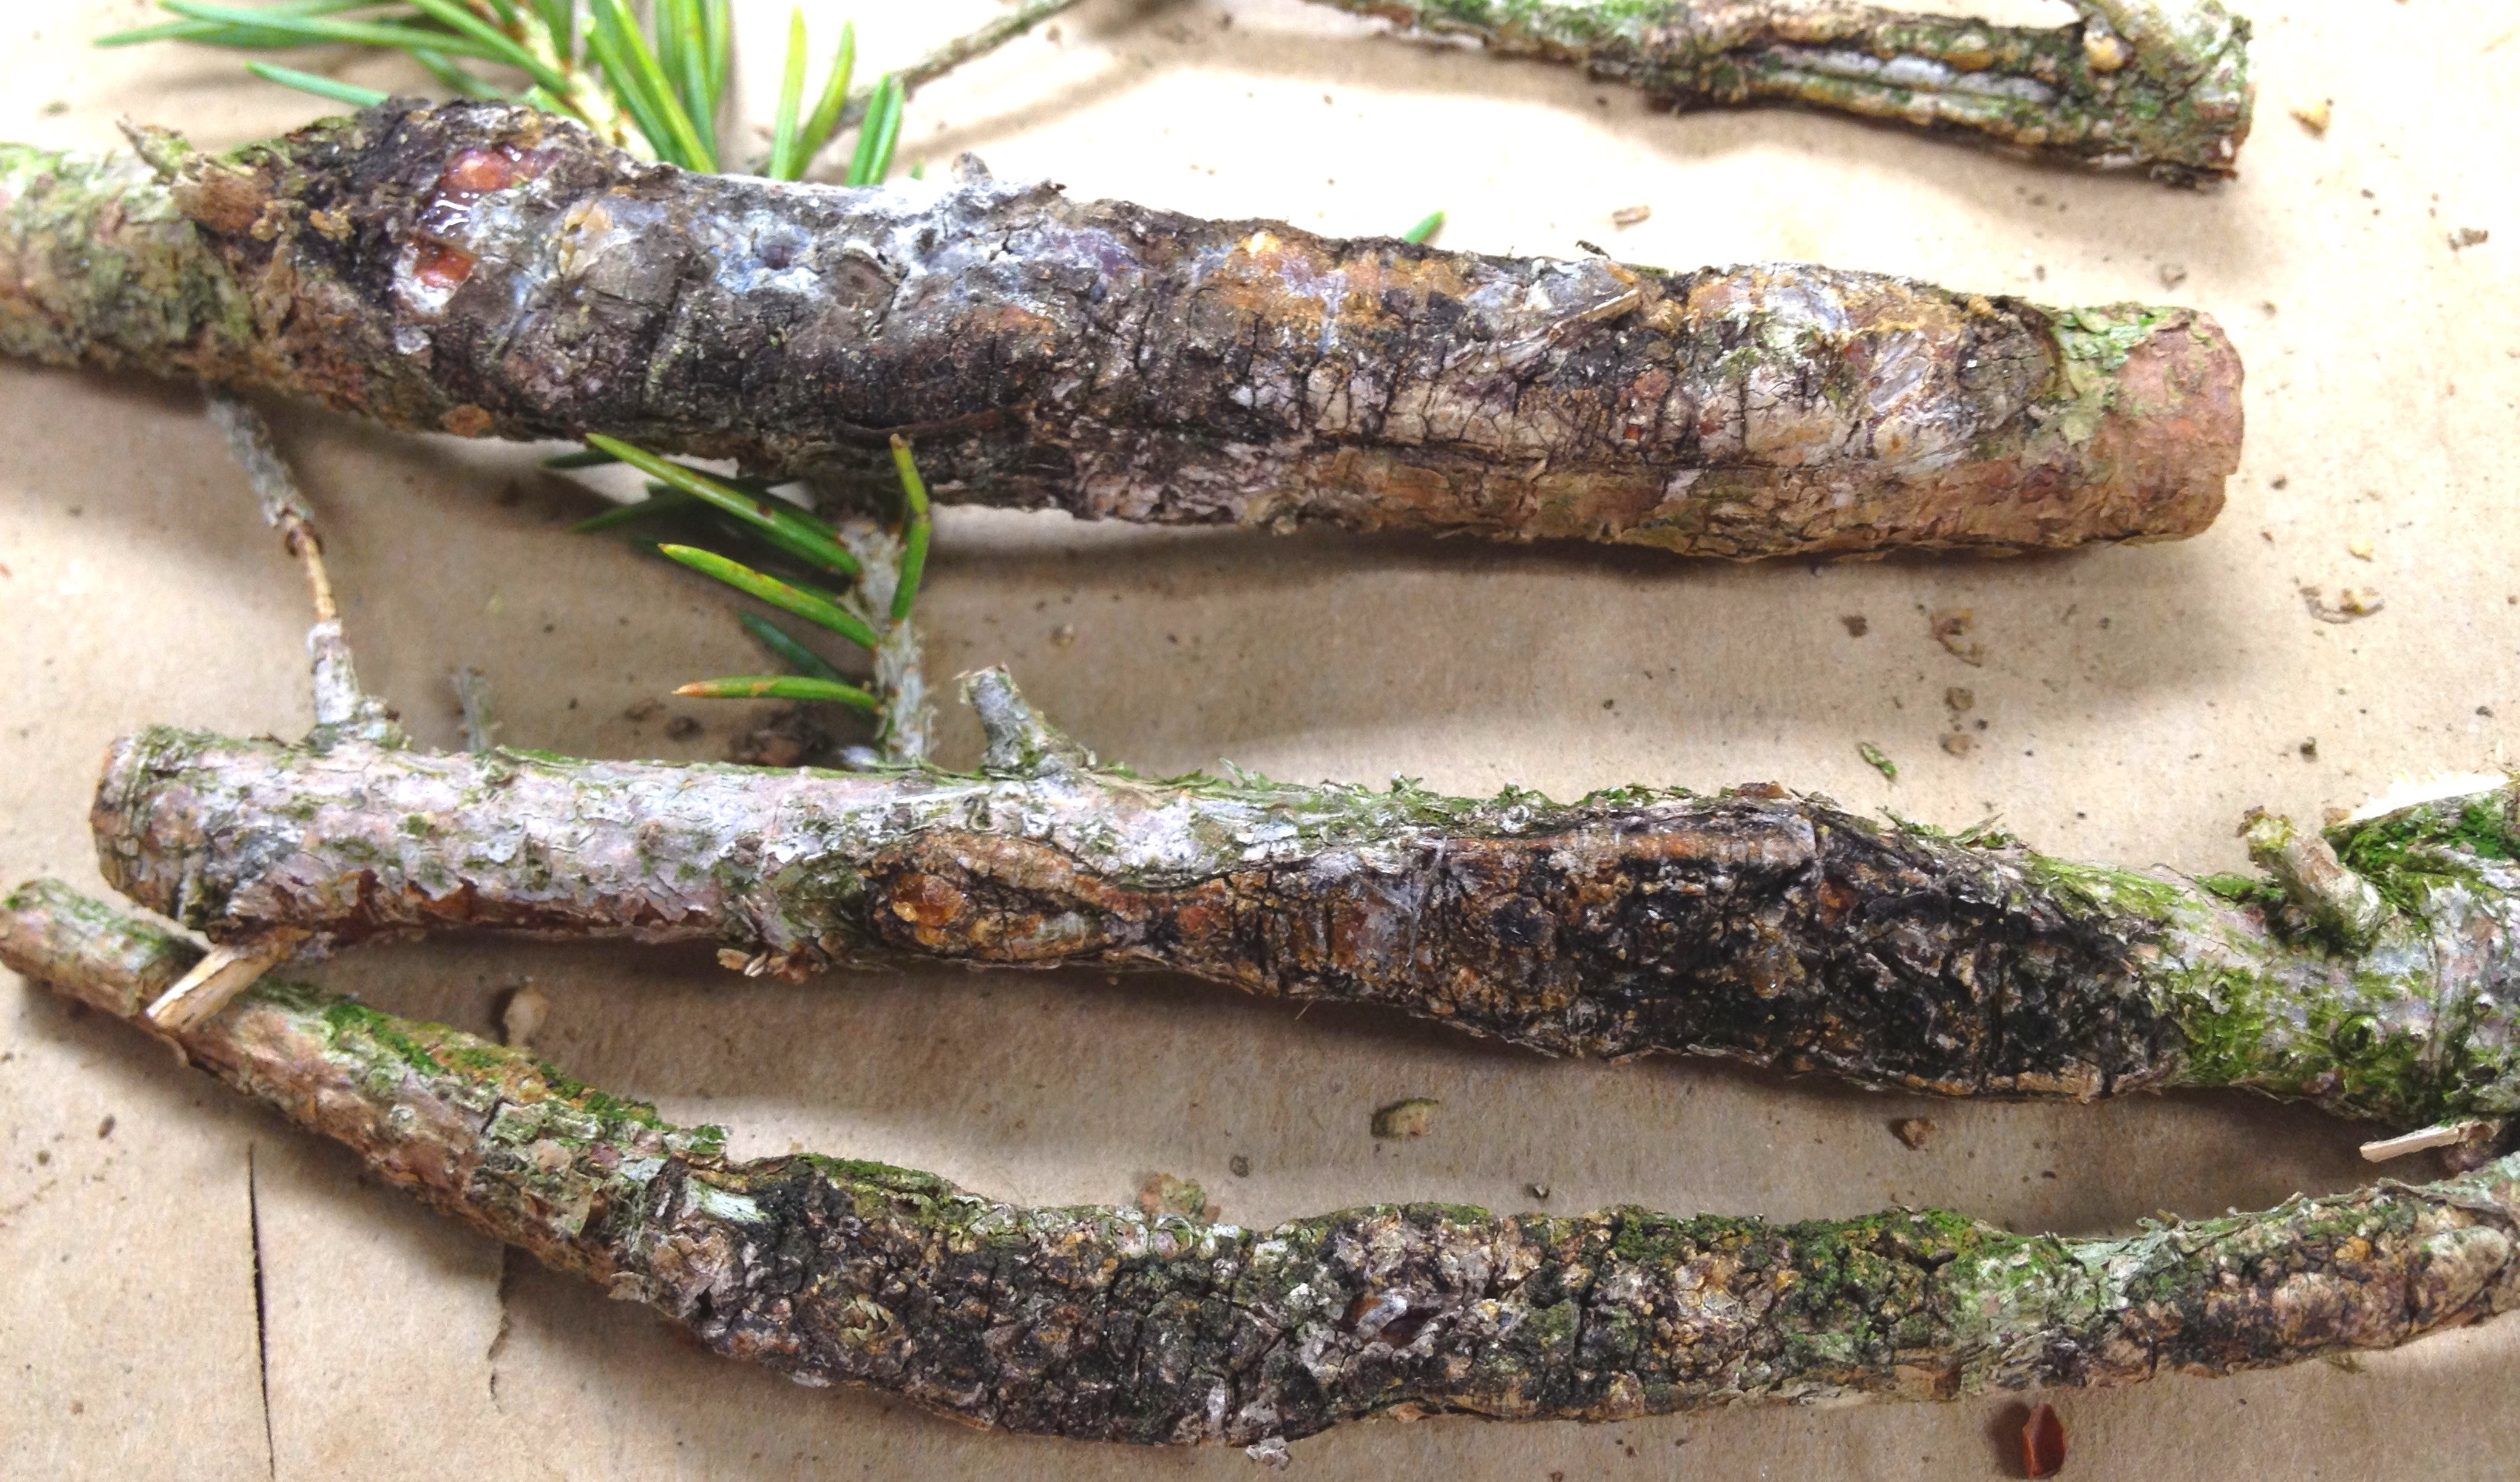 the issue of cytospora canker in fruit Leucostoma canker of stone fruits is mos t severe on cultivated crops in orchards and ornamental plantings it is a minor problem on prunus spec ies found in natural ecosystems.